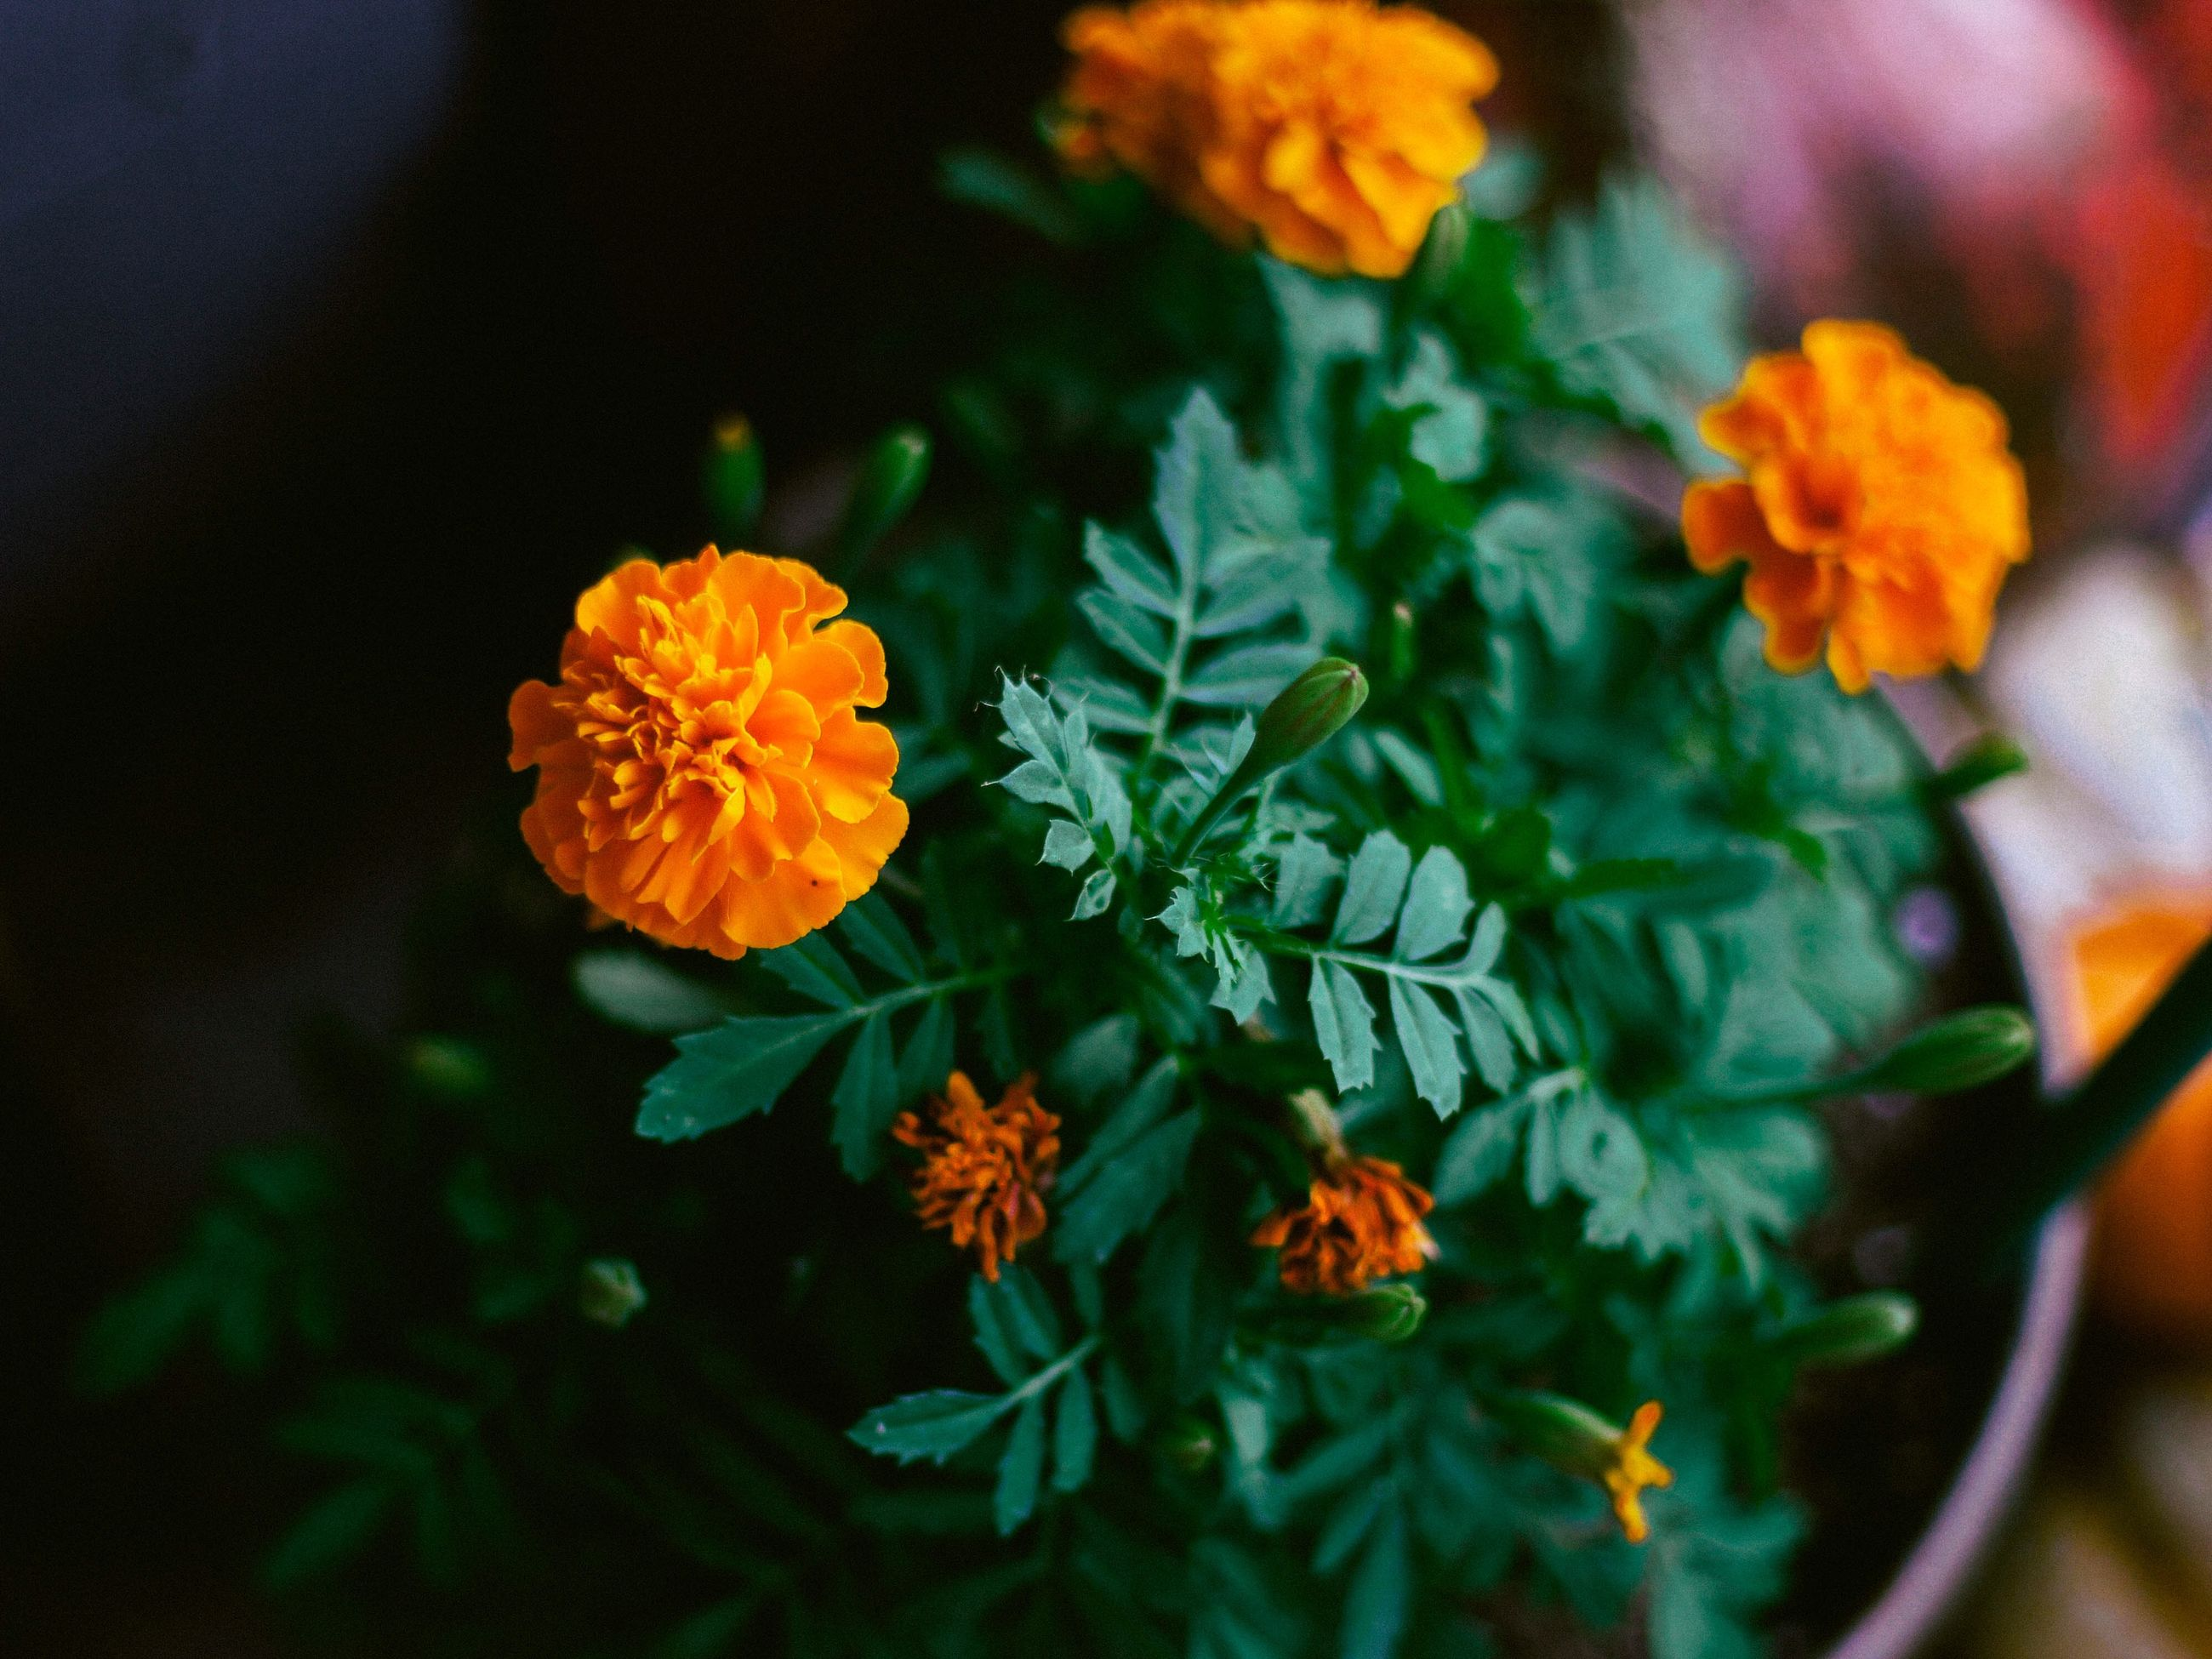 flowering plant, flower, freshness, plant, beauty in nature, fragility, vulnerability, petal, close-up, growth, inflorescence, orange color, flower head, marigold, no people, nature, selective focus, green color, leaf, plant part, outdoors